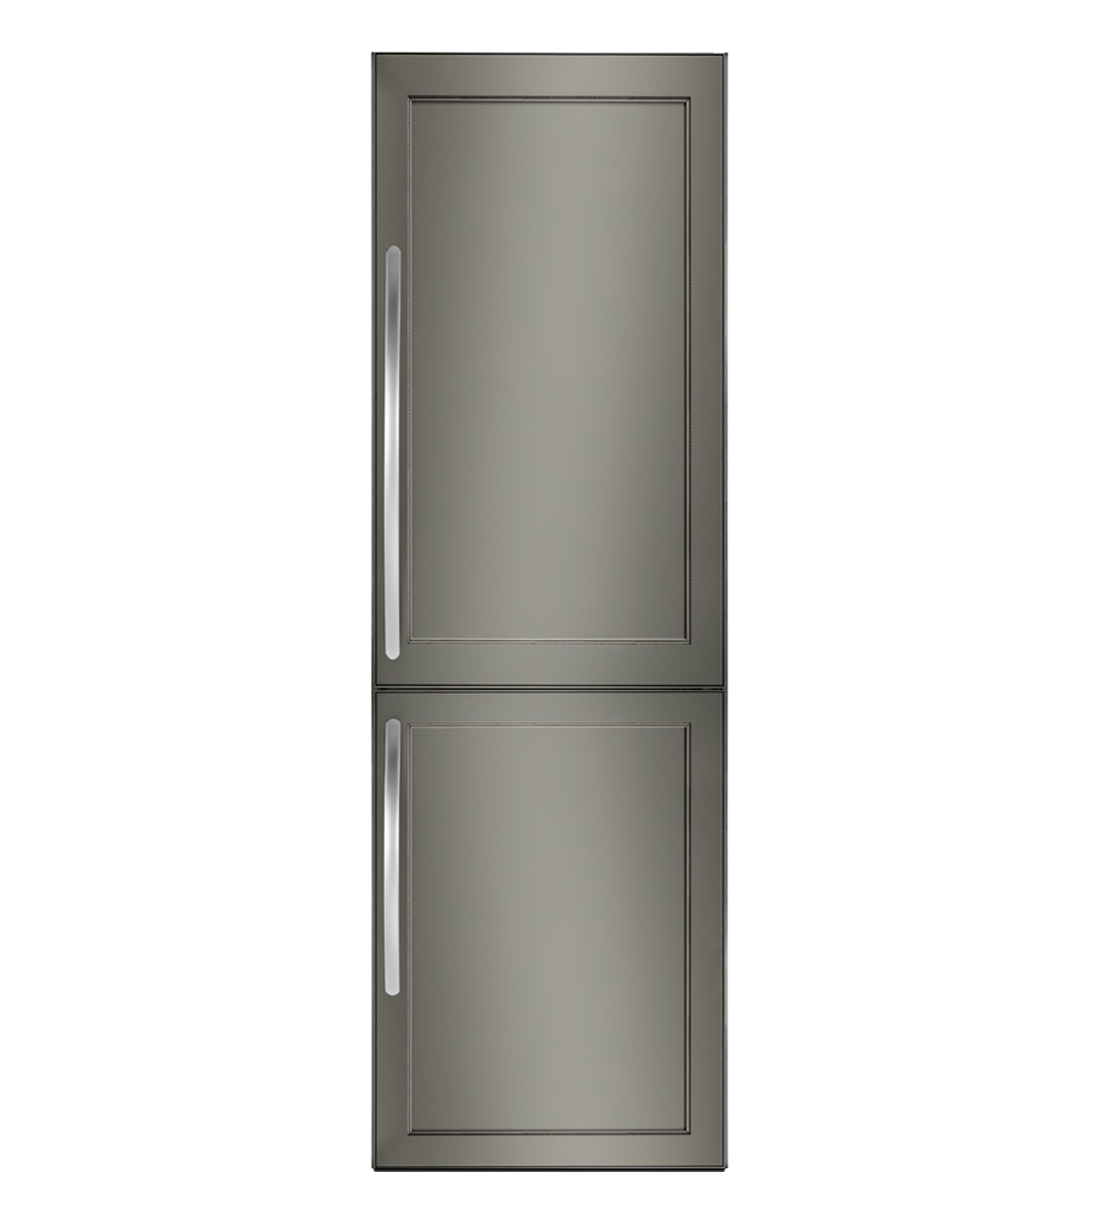 Kitchen Aid Refrigerator in Pannel-Ready color showcased by Corbeil Electro Store